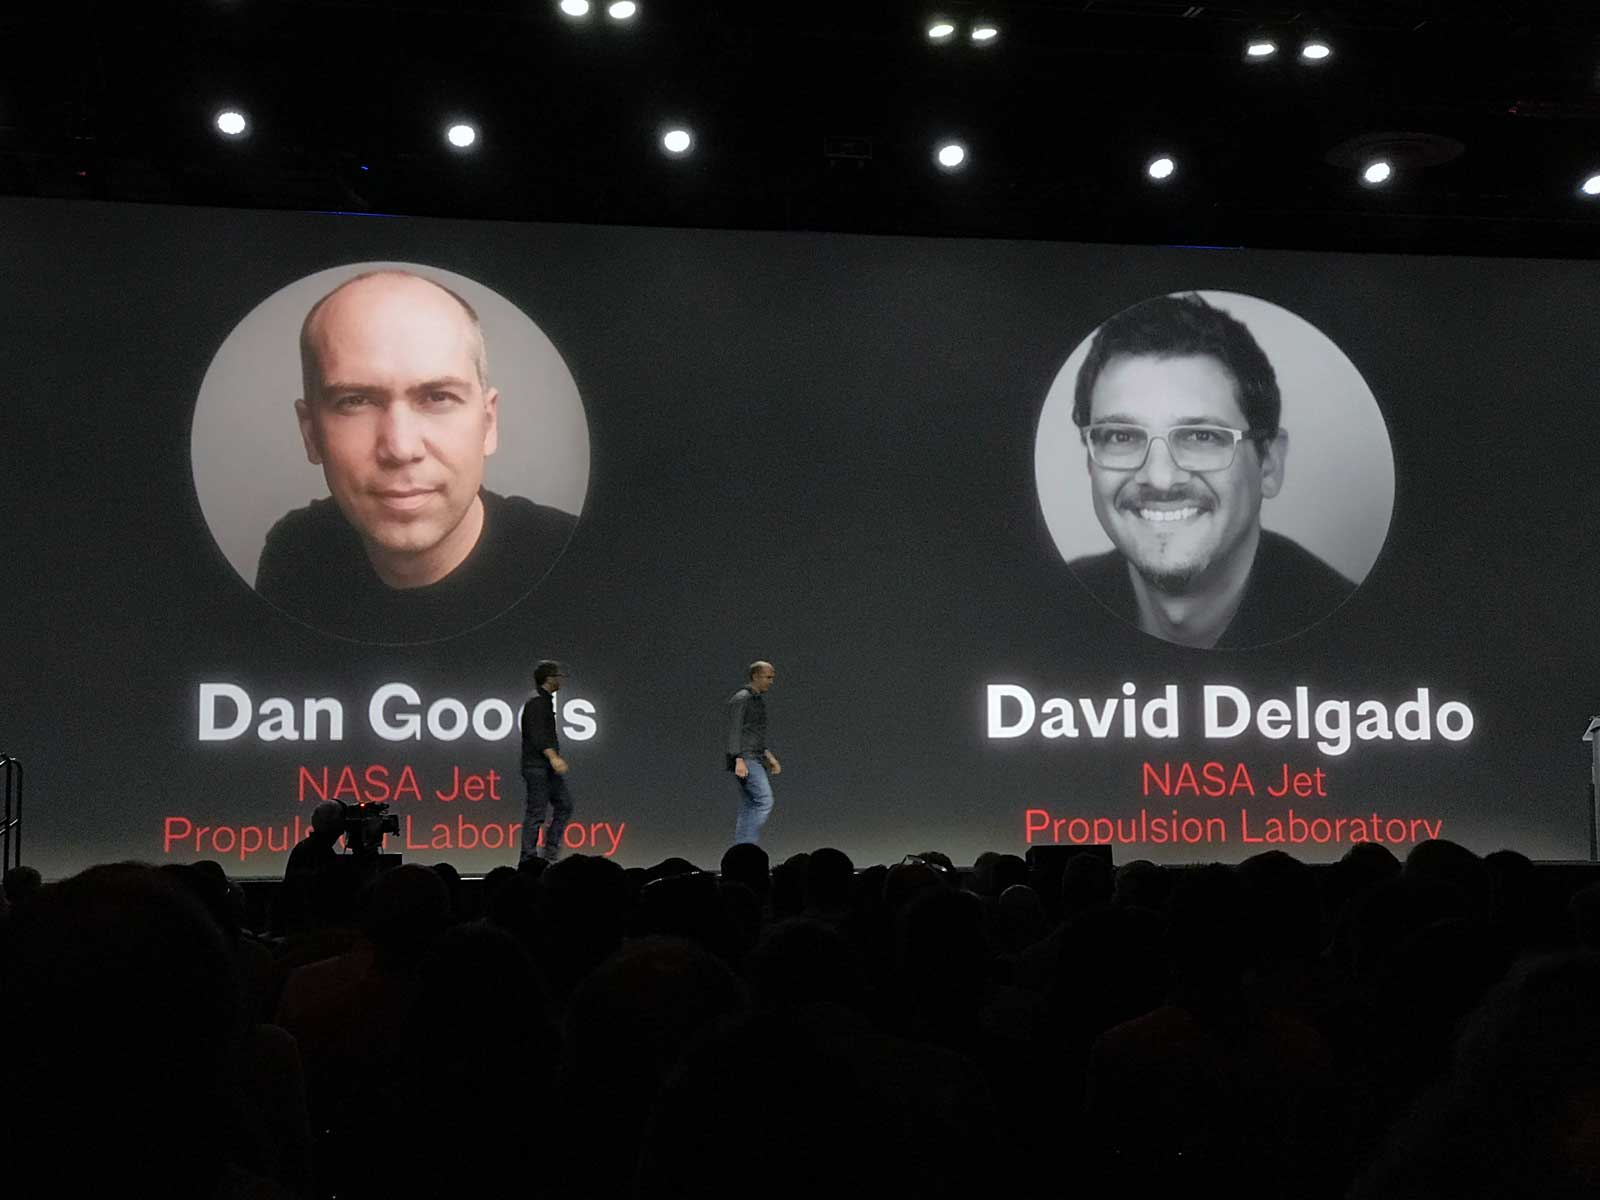 Dan Goods and David Delgado Keynote